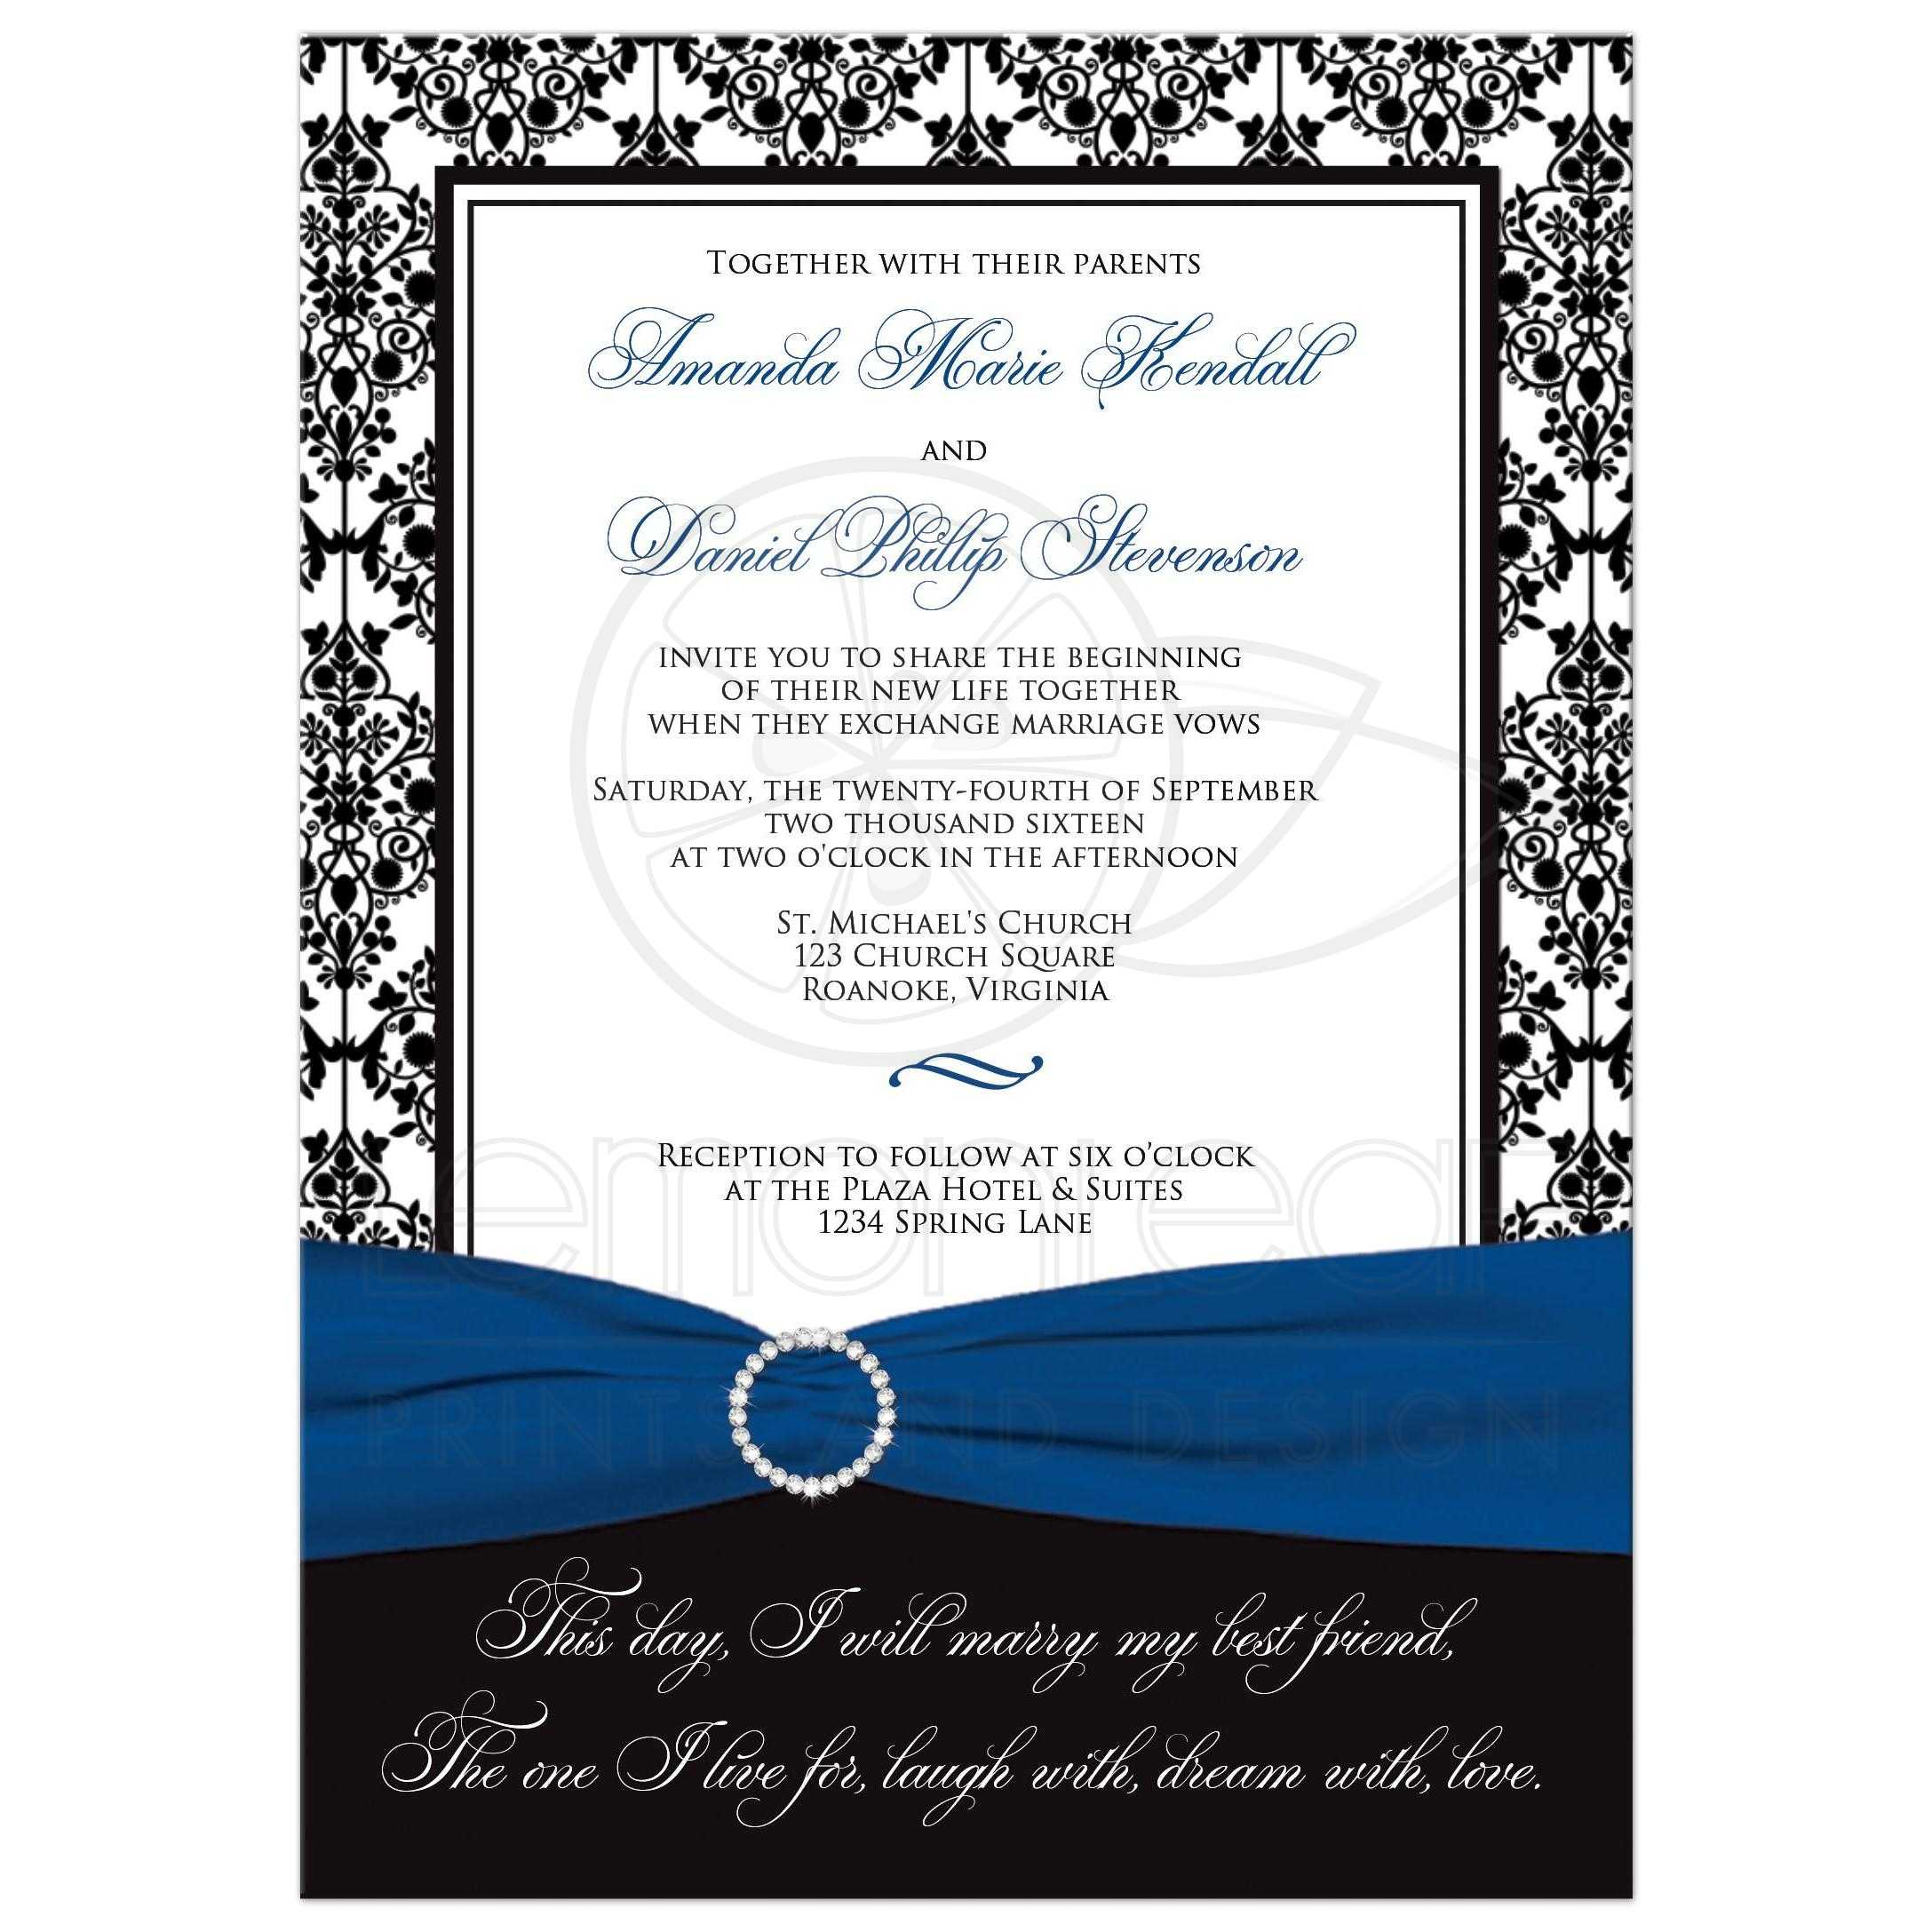 Lace Ribbon Wedding Invitations was great invitations example